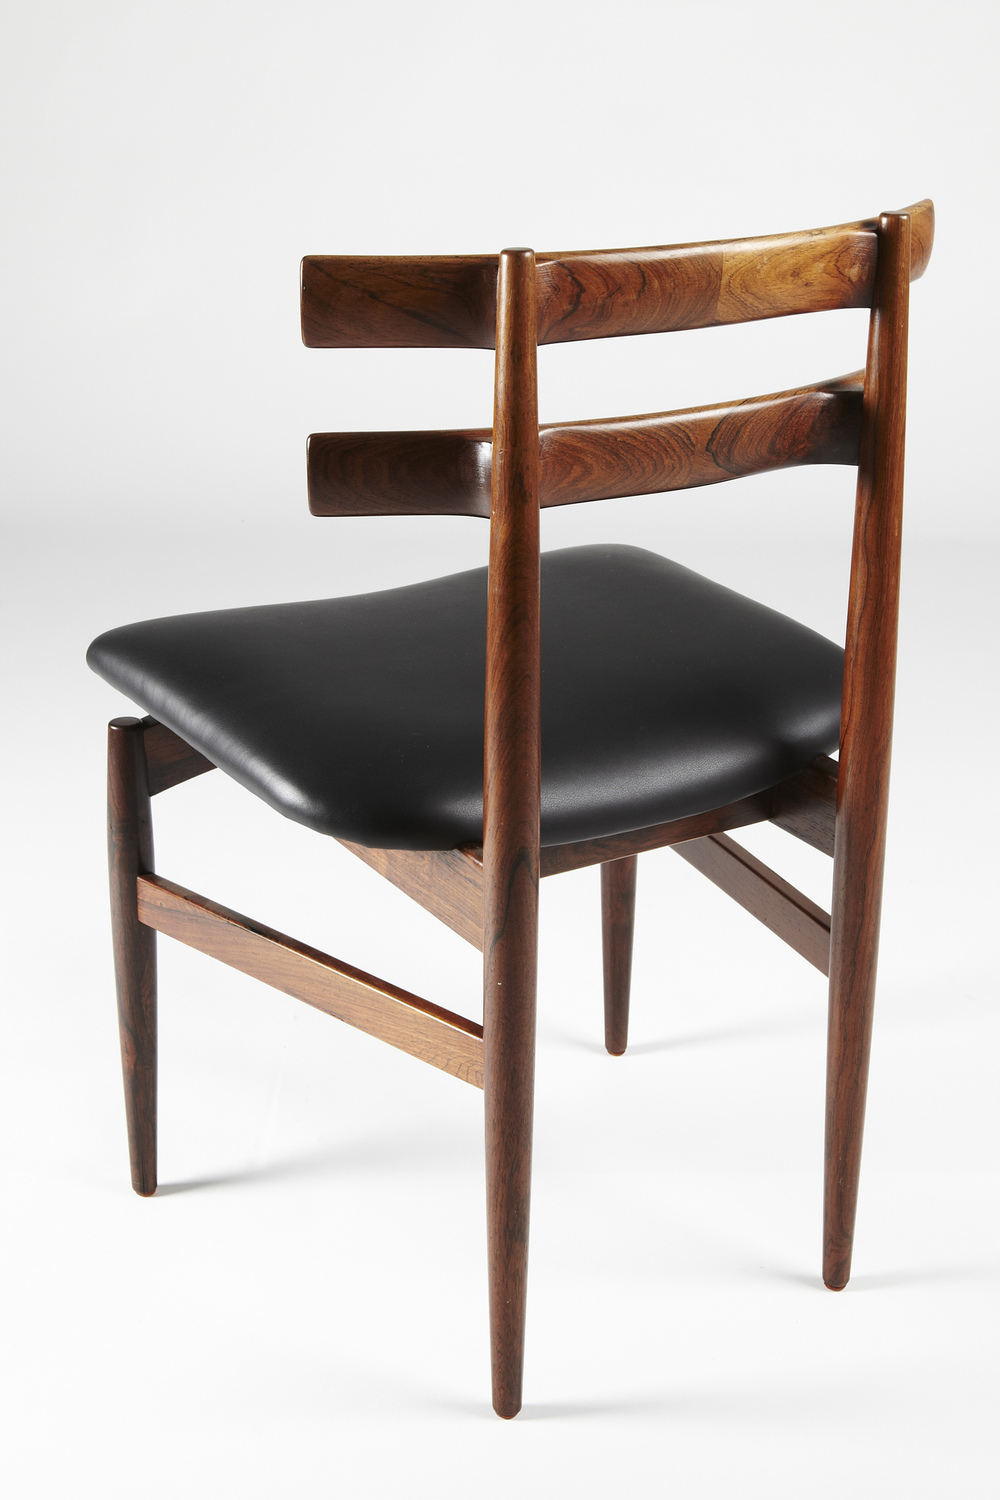 K Kristiansen 1963 Dining Chair  • made 1963-69  •